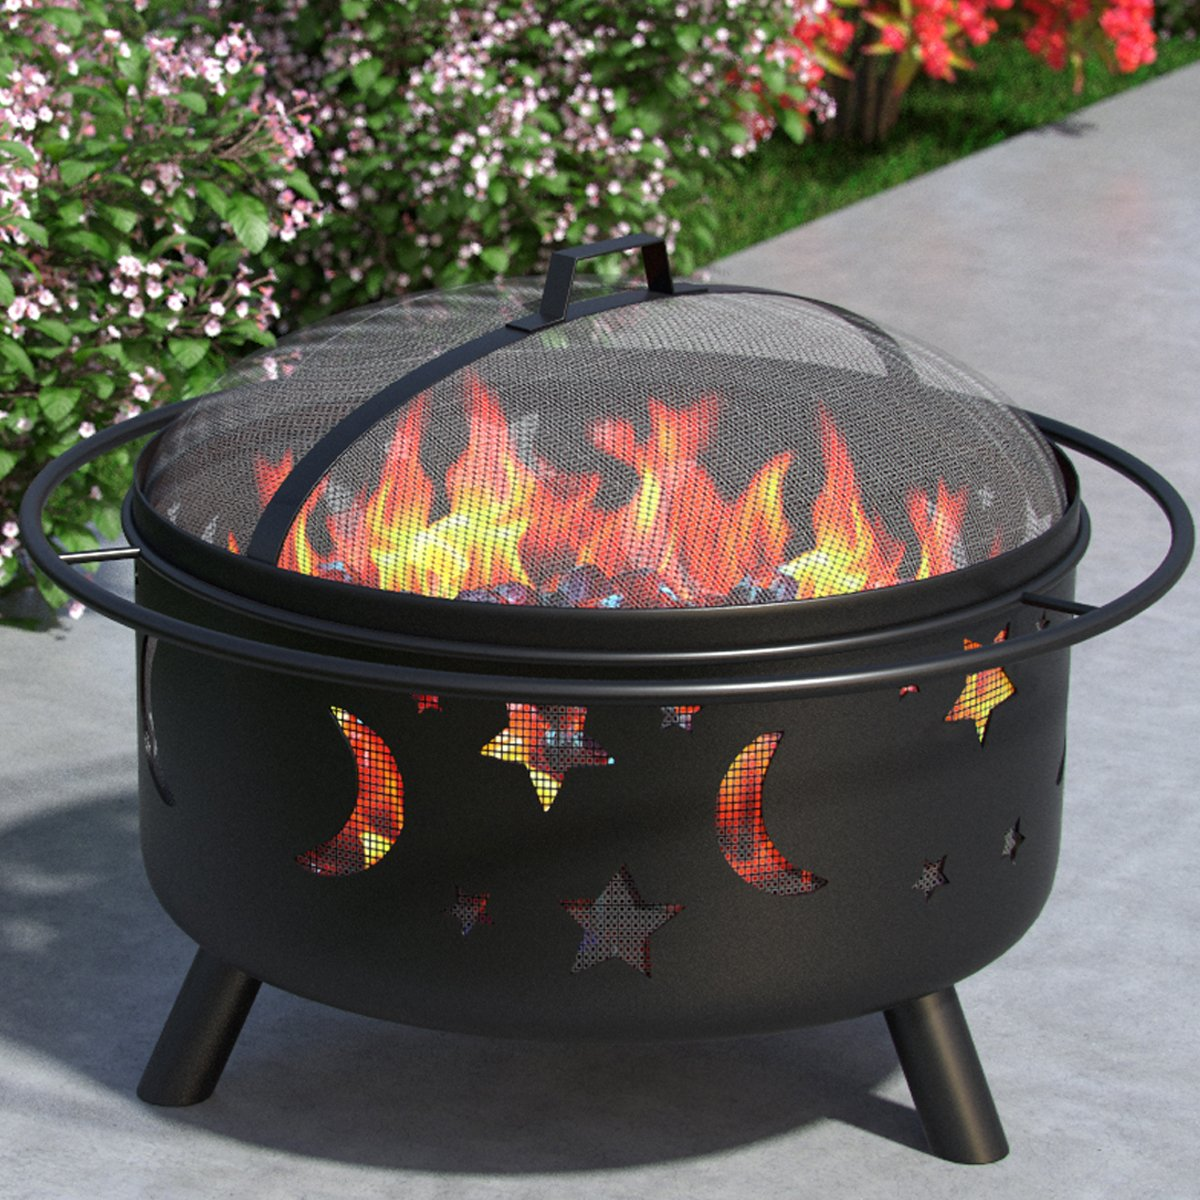 """Stars and Moon 23"""" Portable Outdoor Fireplace Fire Pit Ring For Backyard Patio Fire, RV, Patio Heater, Stove, Camping, Bonfire, Picnic, Firebowl No Propane, Includes Safety Mesh Cover, Poker Stick"""